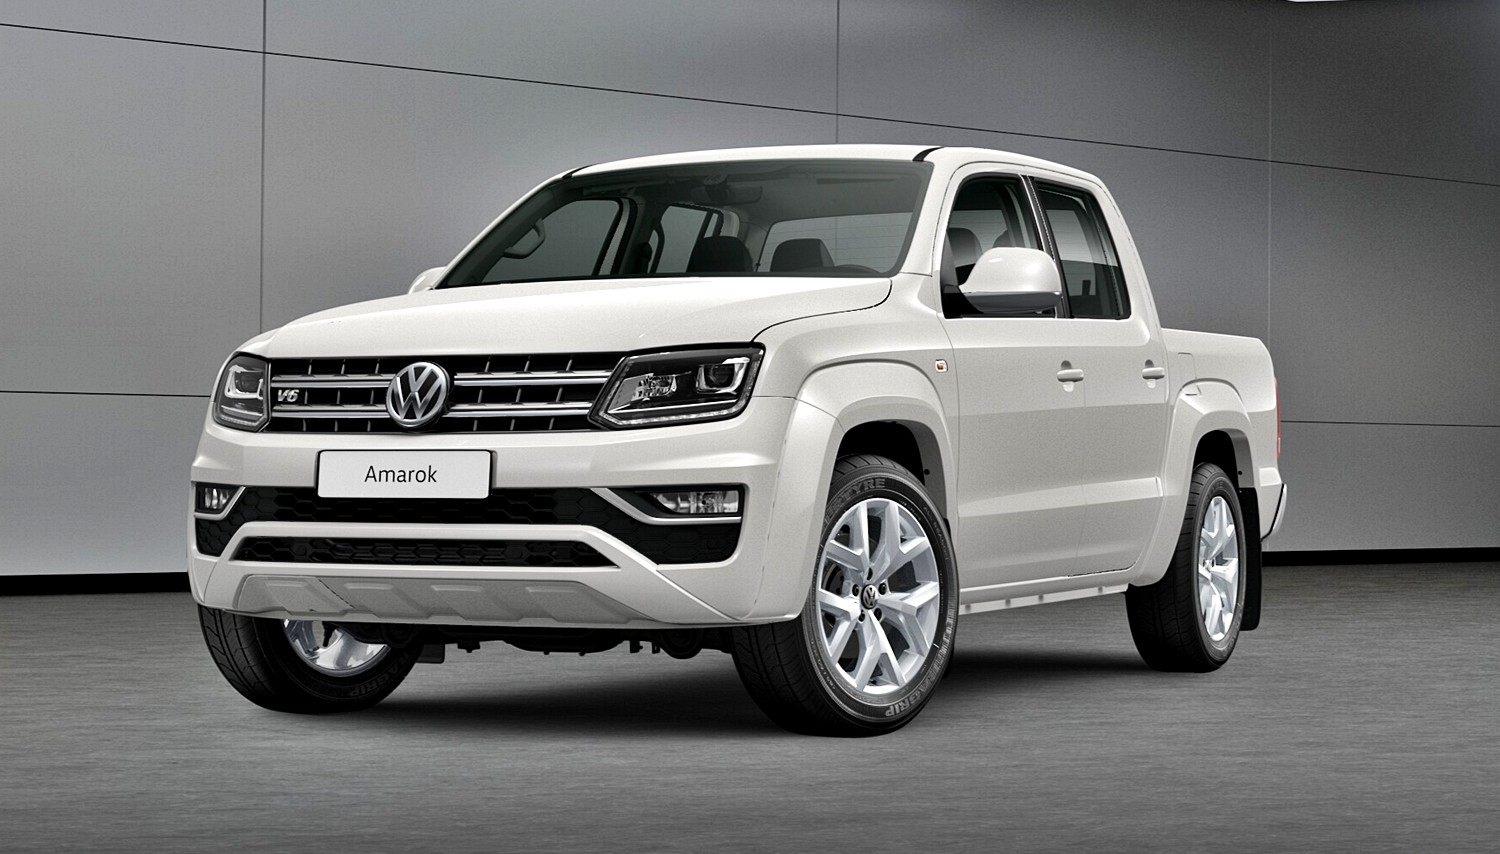 vw amarok v6 esgota em dois dias all the cars. Black Bedroom Furniture Sets. Home Design Ideas